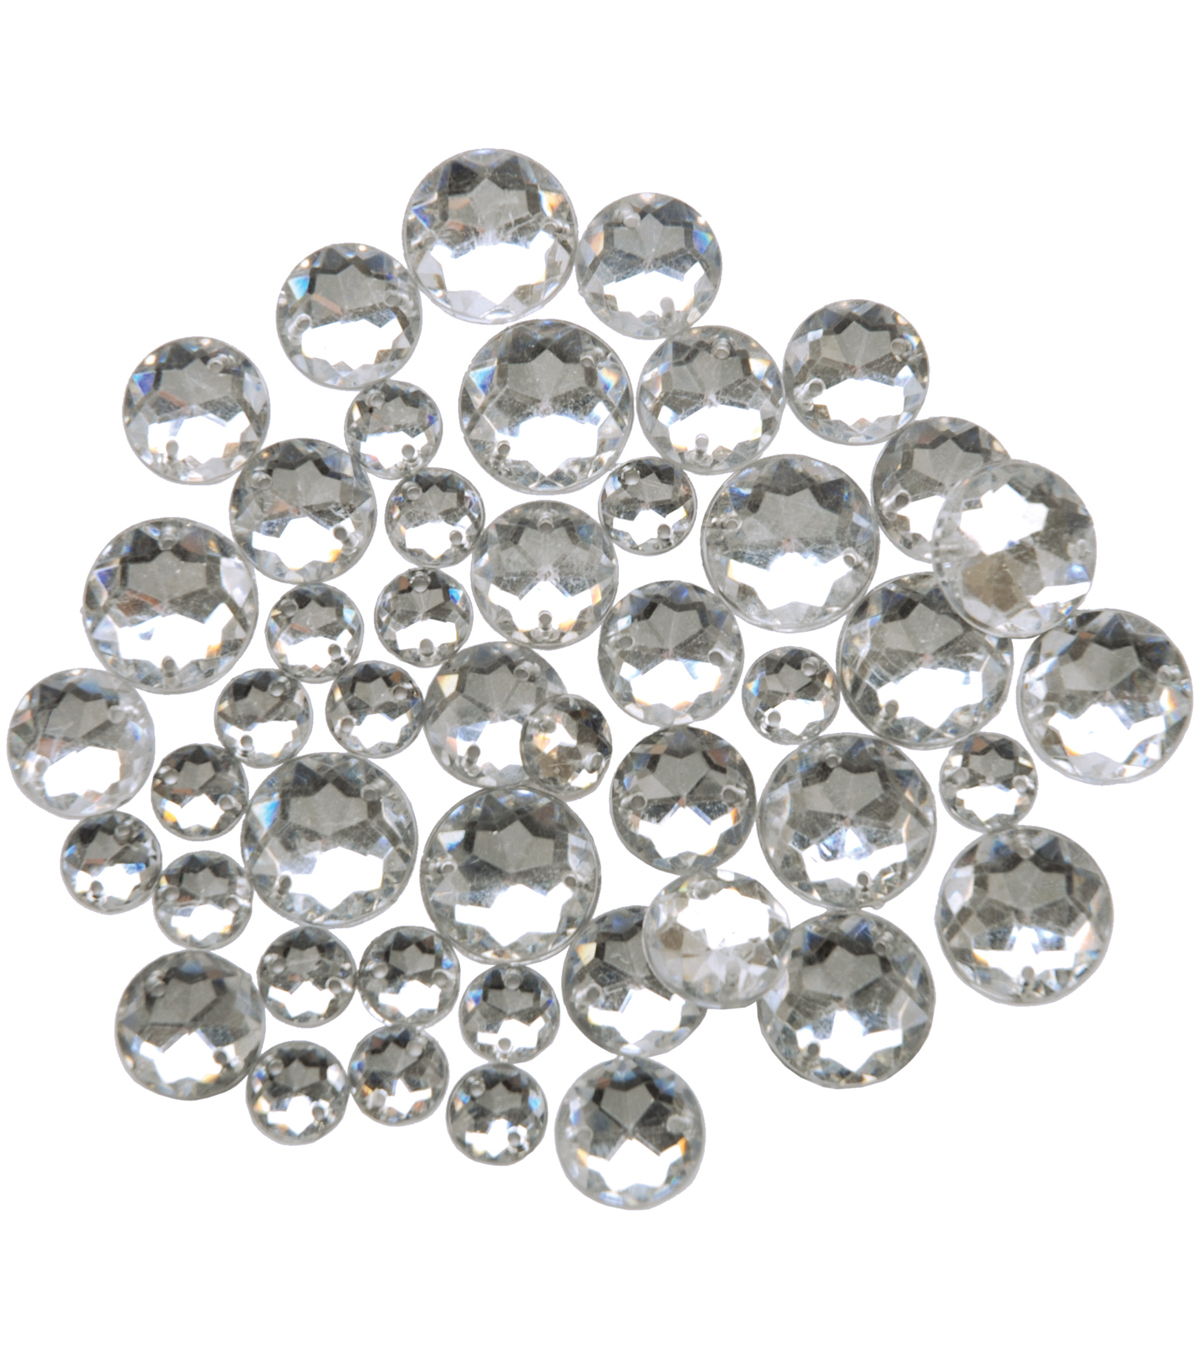 Blumenthal Lansing-Favorite Findings Sew-On Round Gems-Clear 47/Pkg